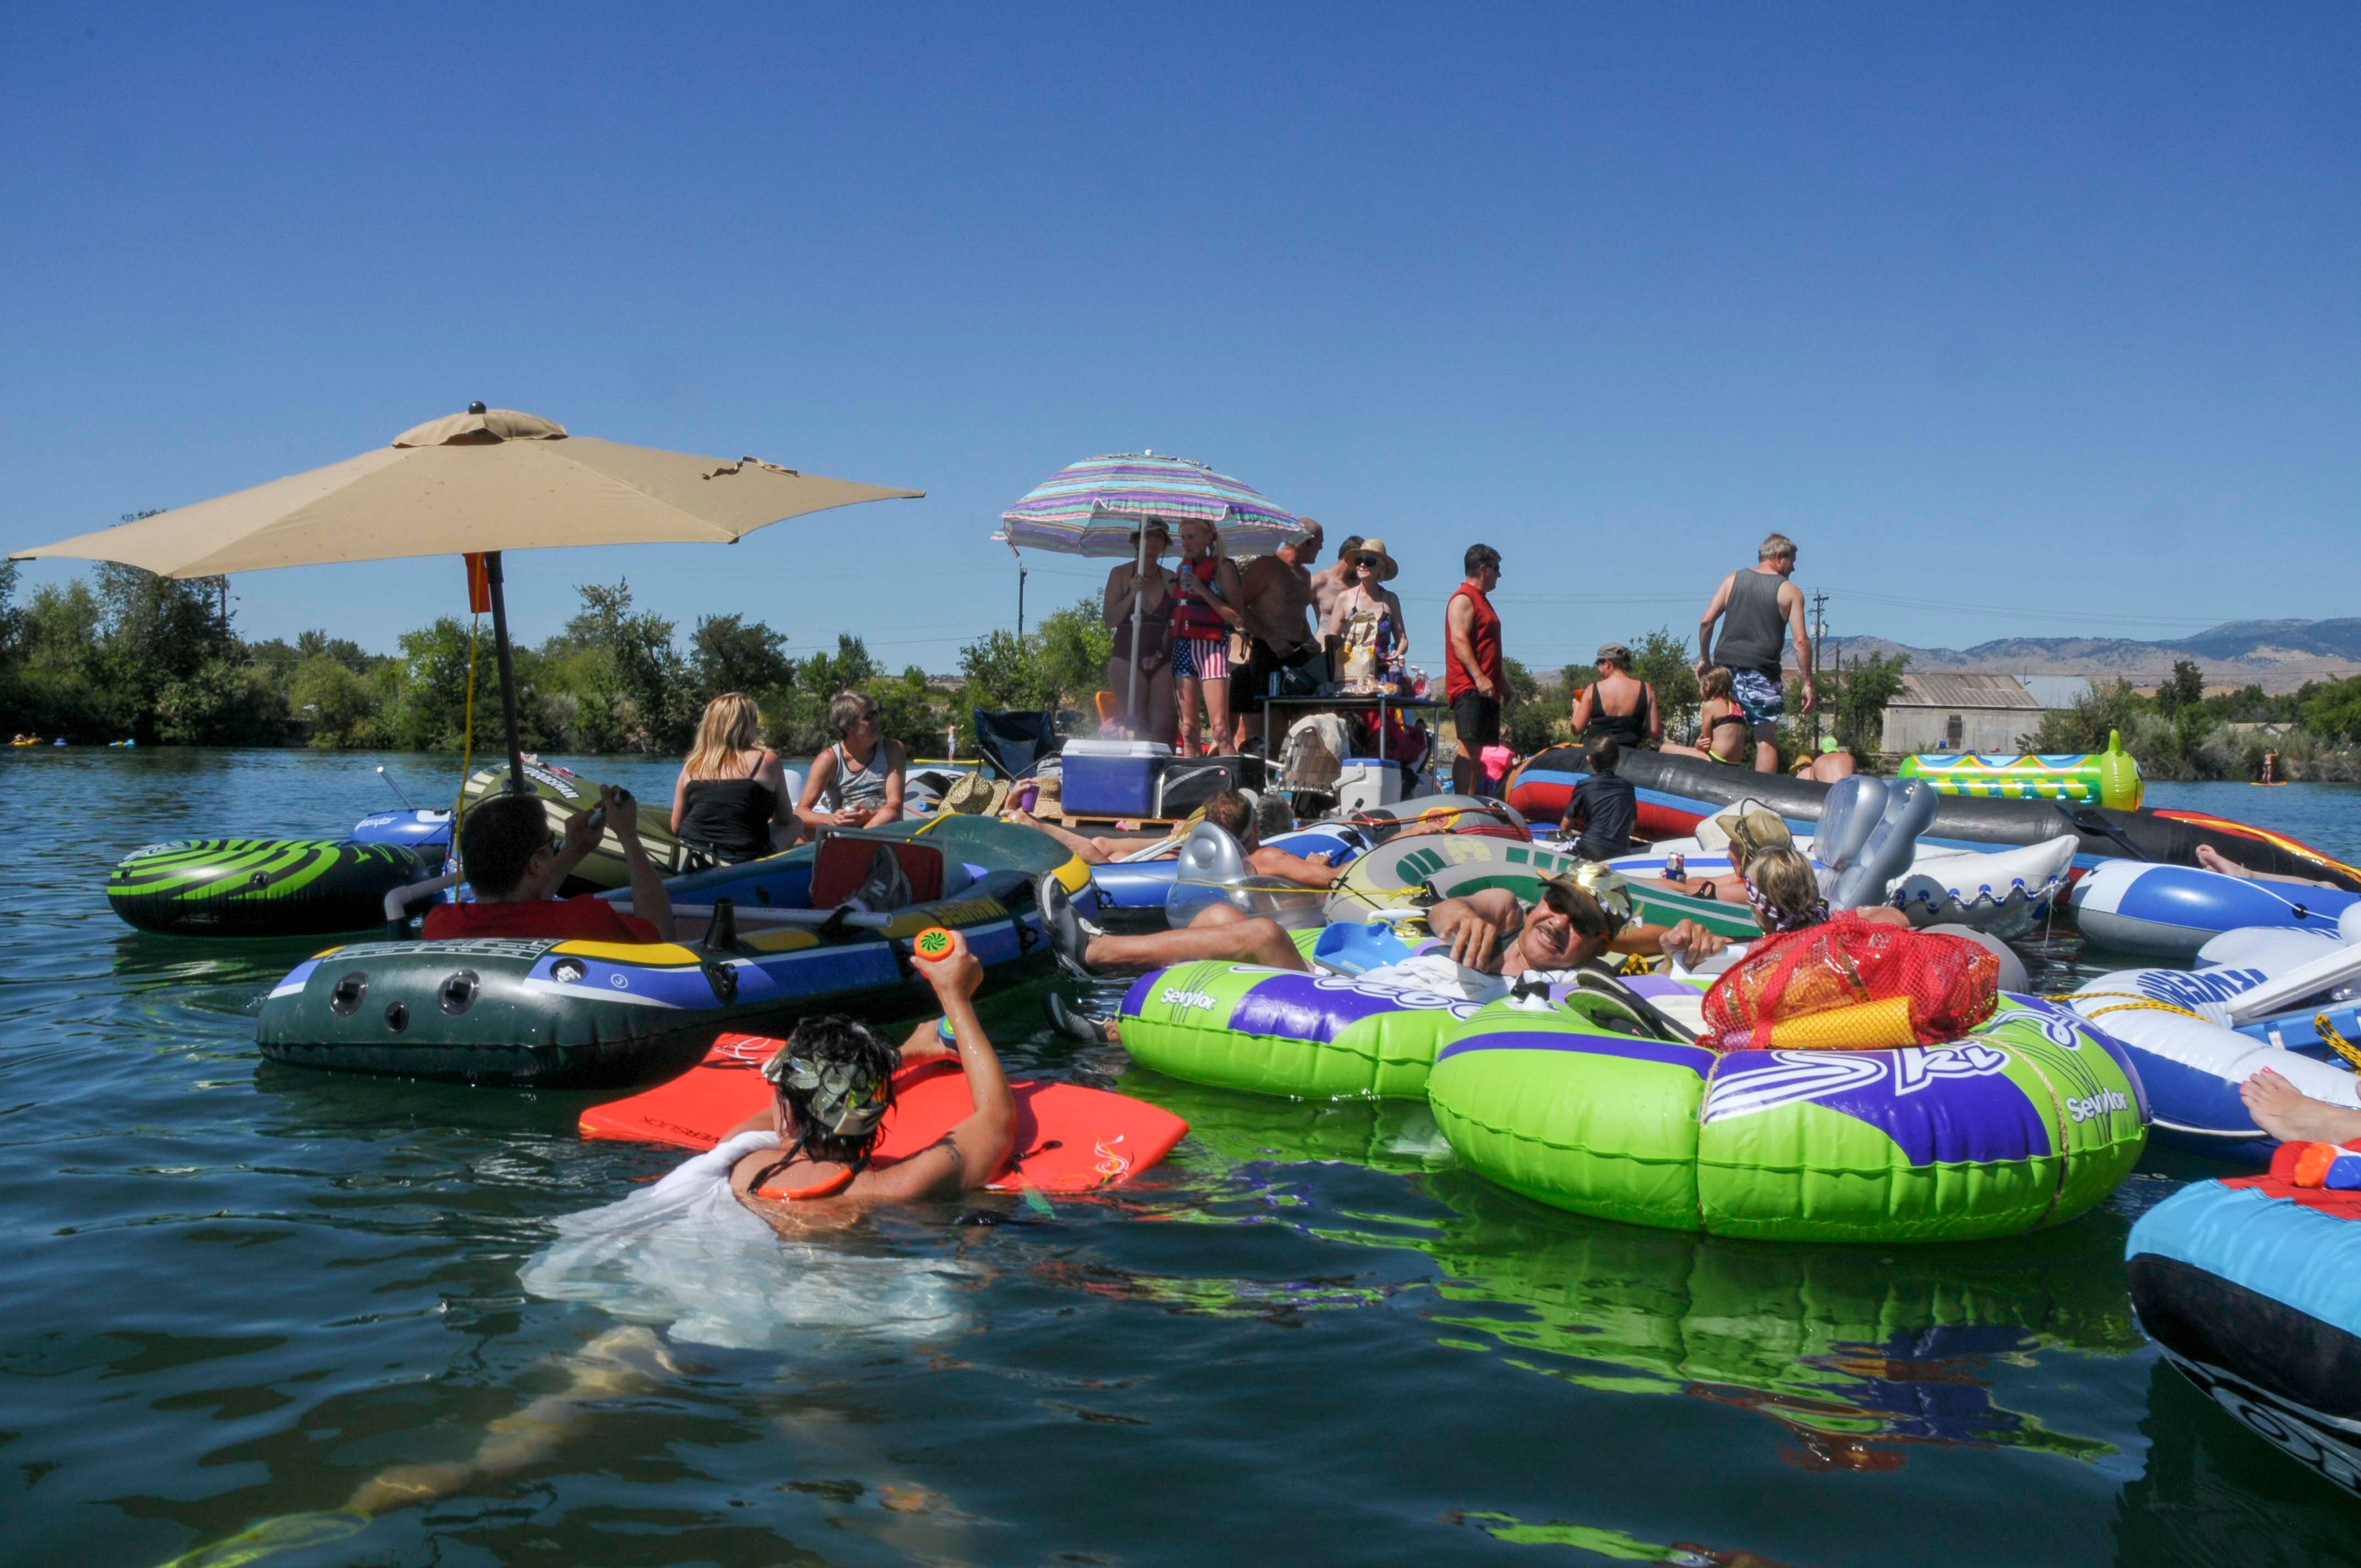 Singles club boise id These Are The 10 Easiest Cities To Get Laid In Idaho For - RoadSnacks